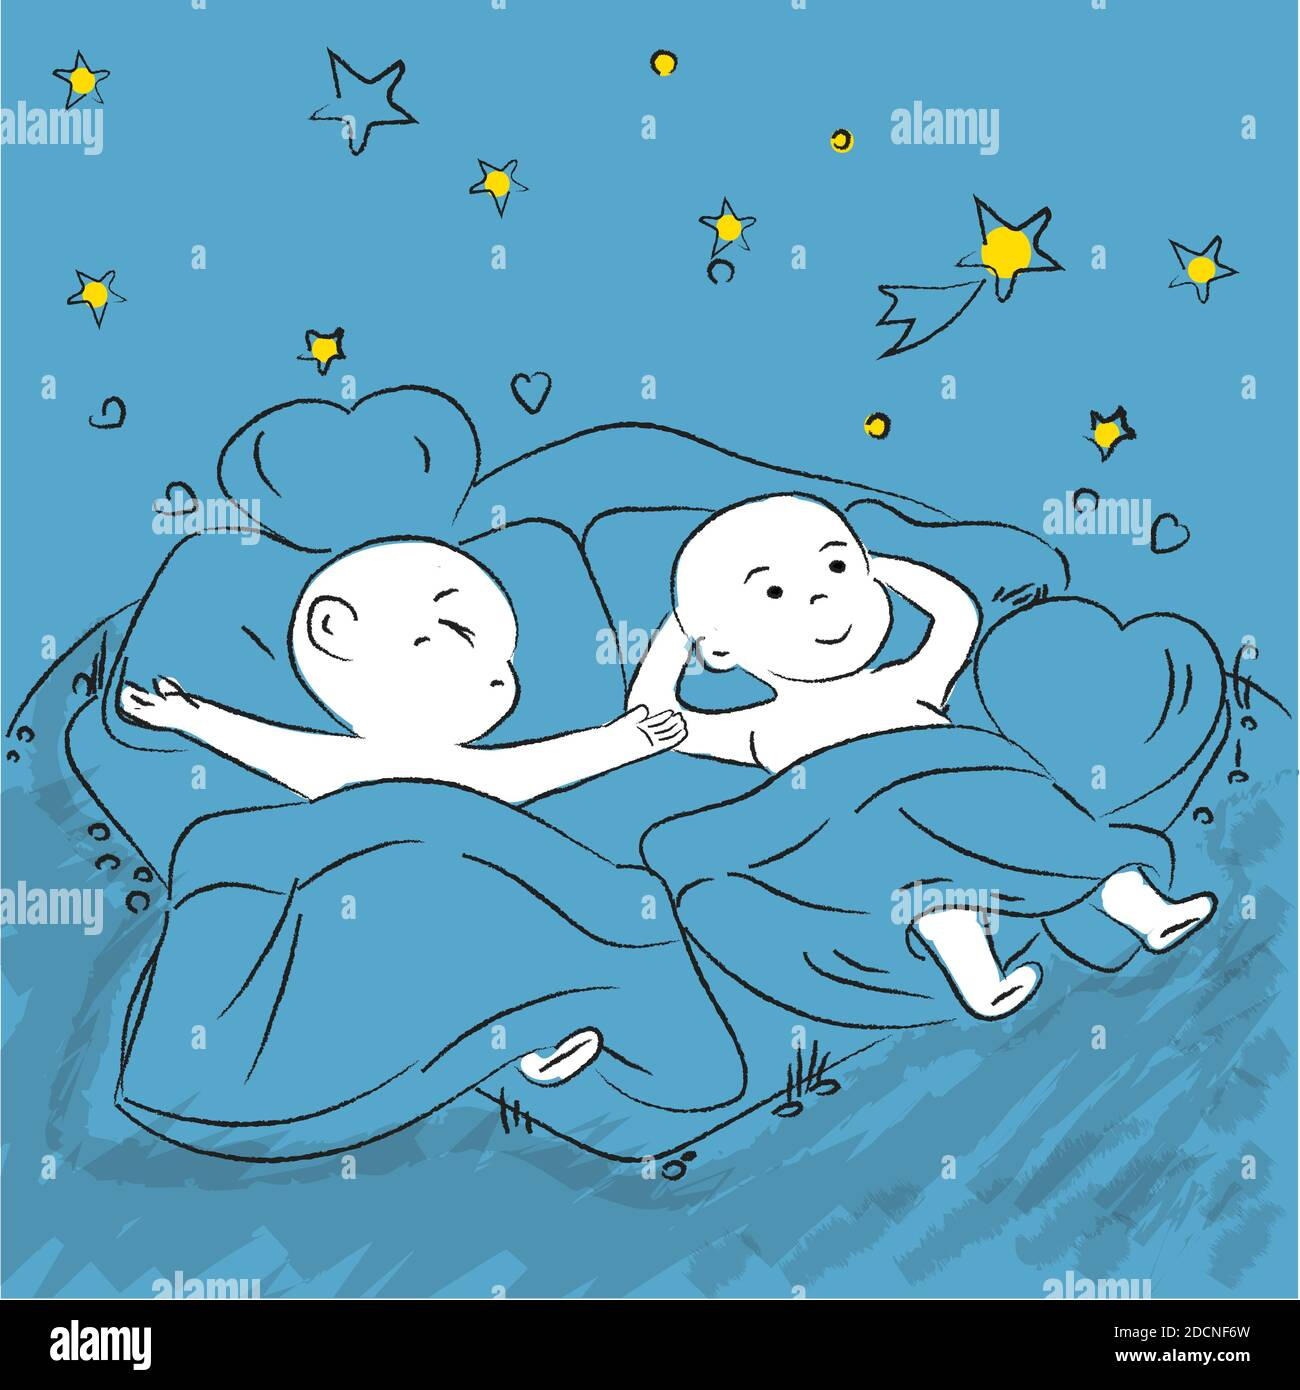 Cute Cartoon Couple Cuddles In Bed Vector Cartoon Of A Boyfriend And Girlfriend Sleeping Together Cute Chib Cartoon Illustration Doodle Style Stock Vector Image Art Alamy